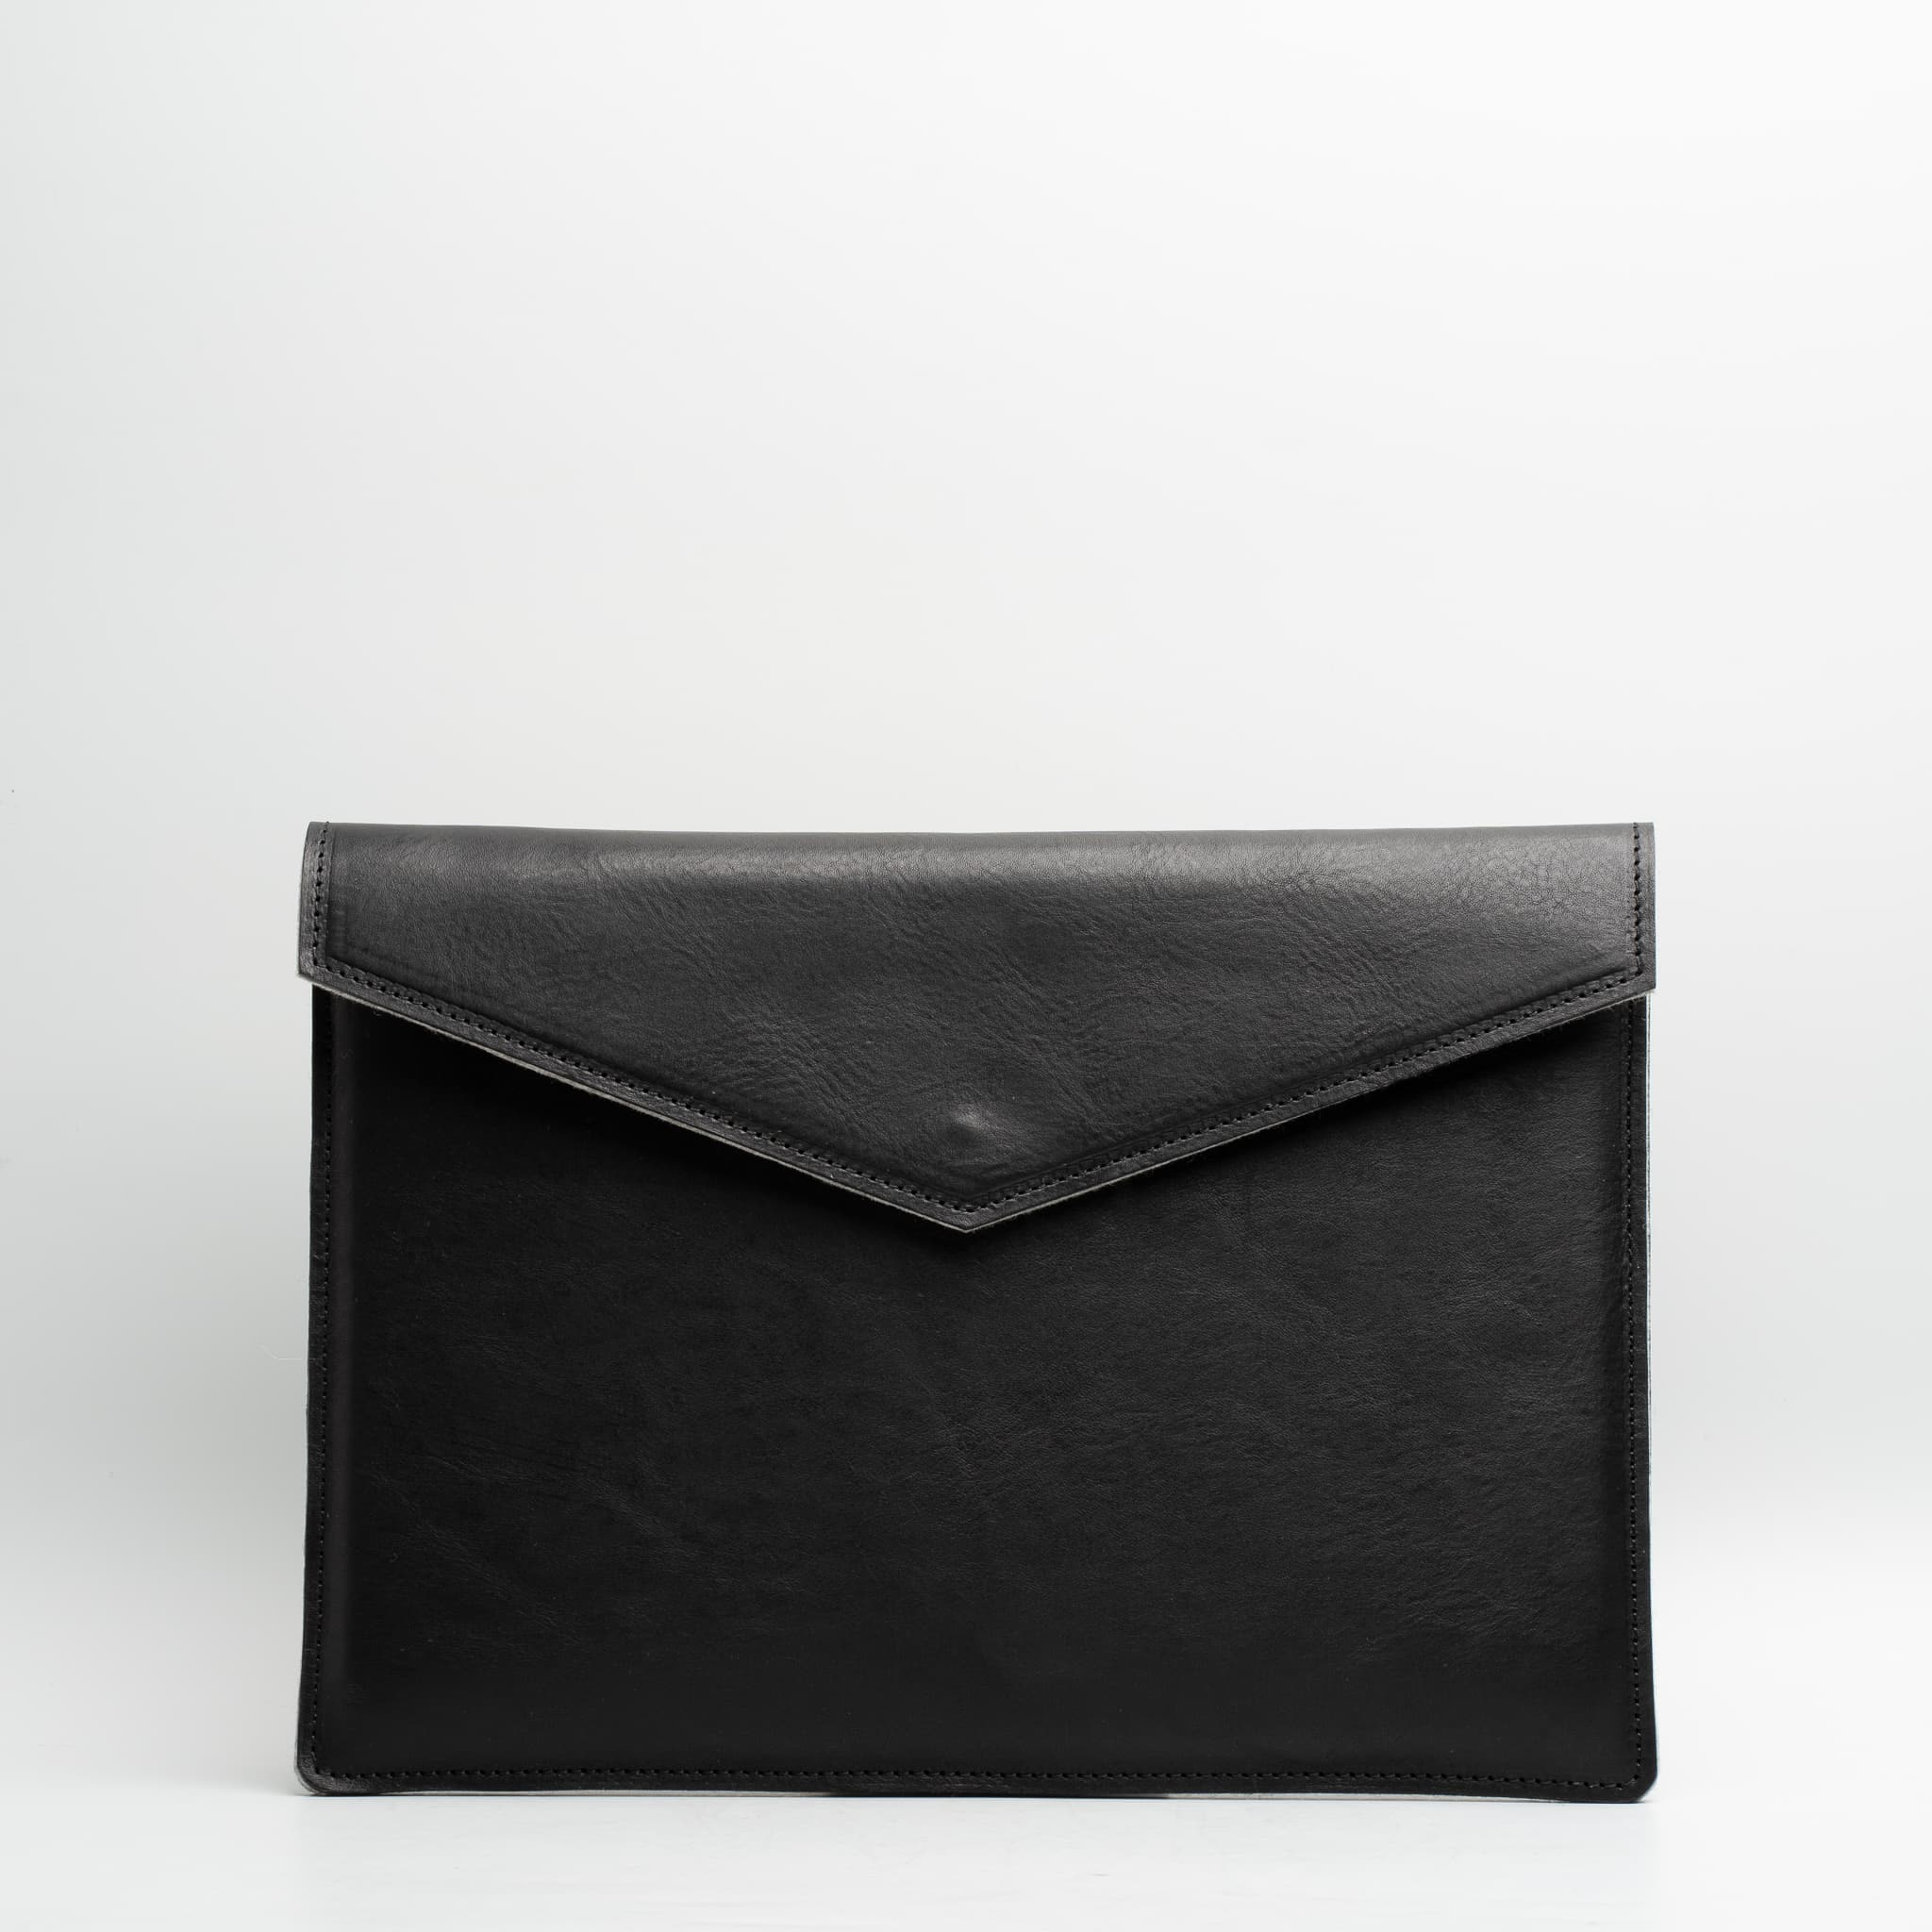 black Leder macbook airÄrmel.jpg